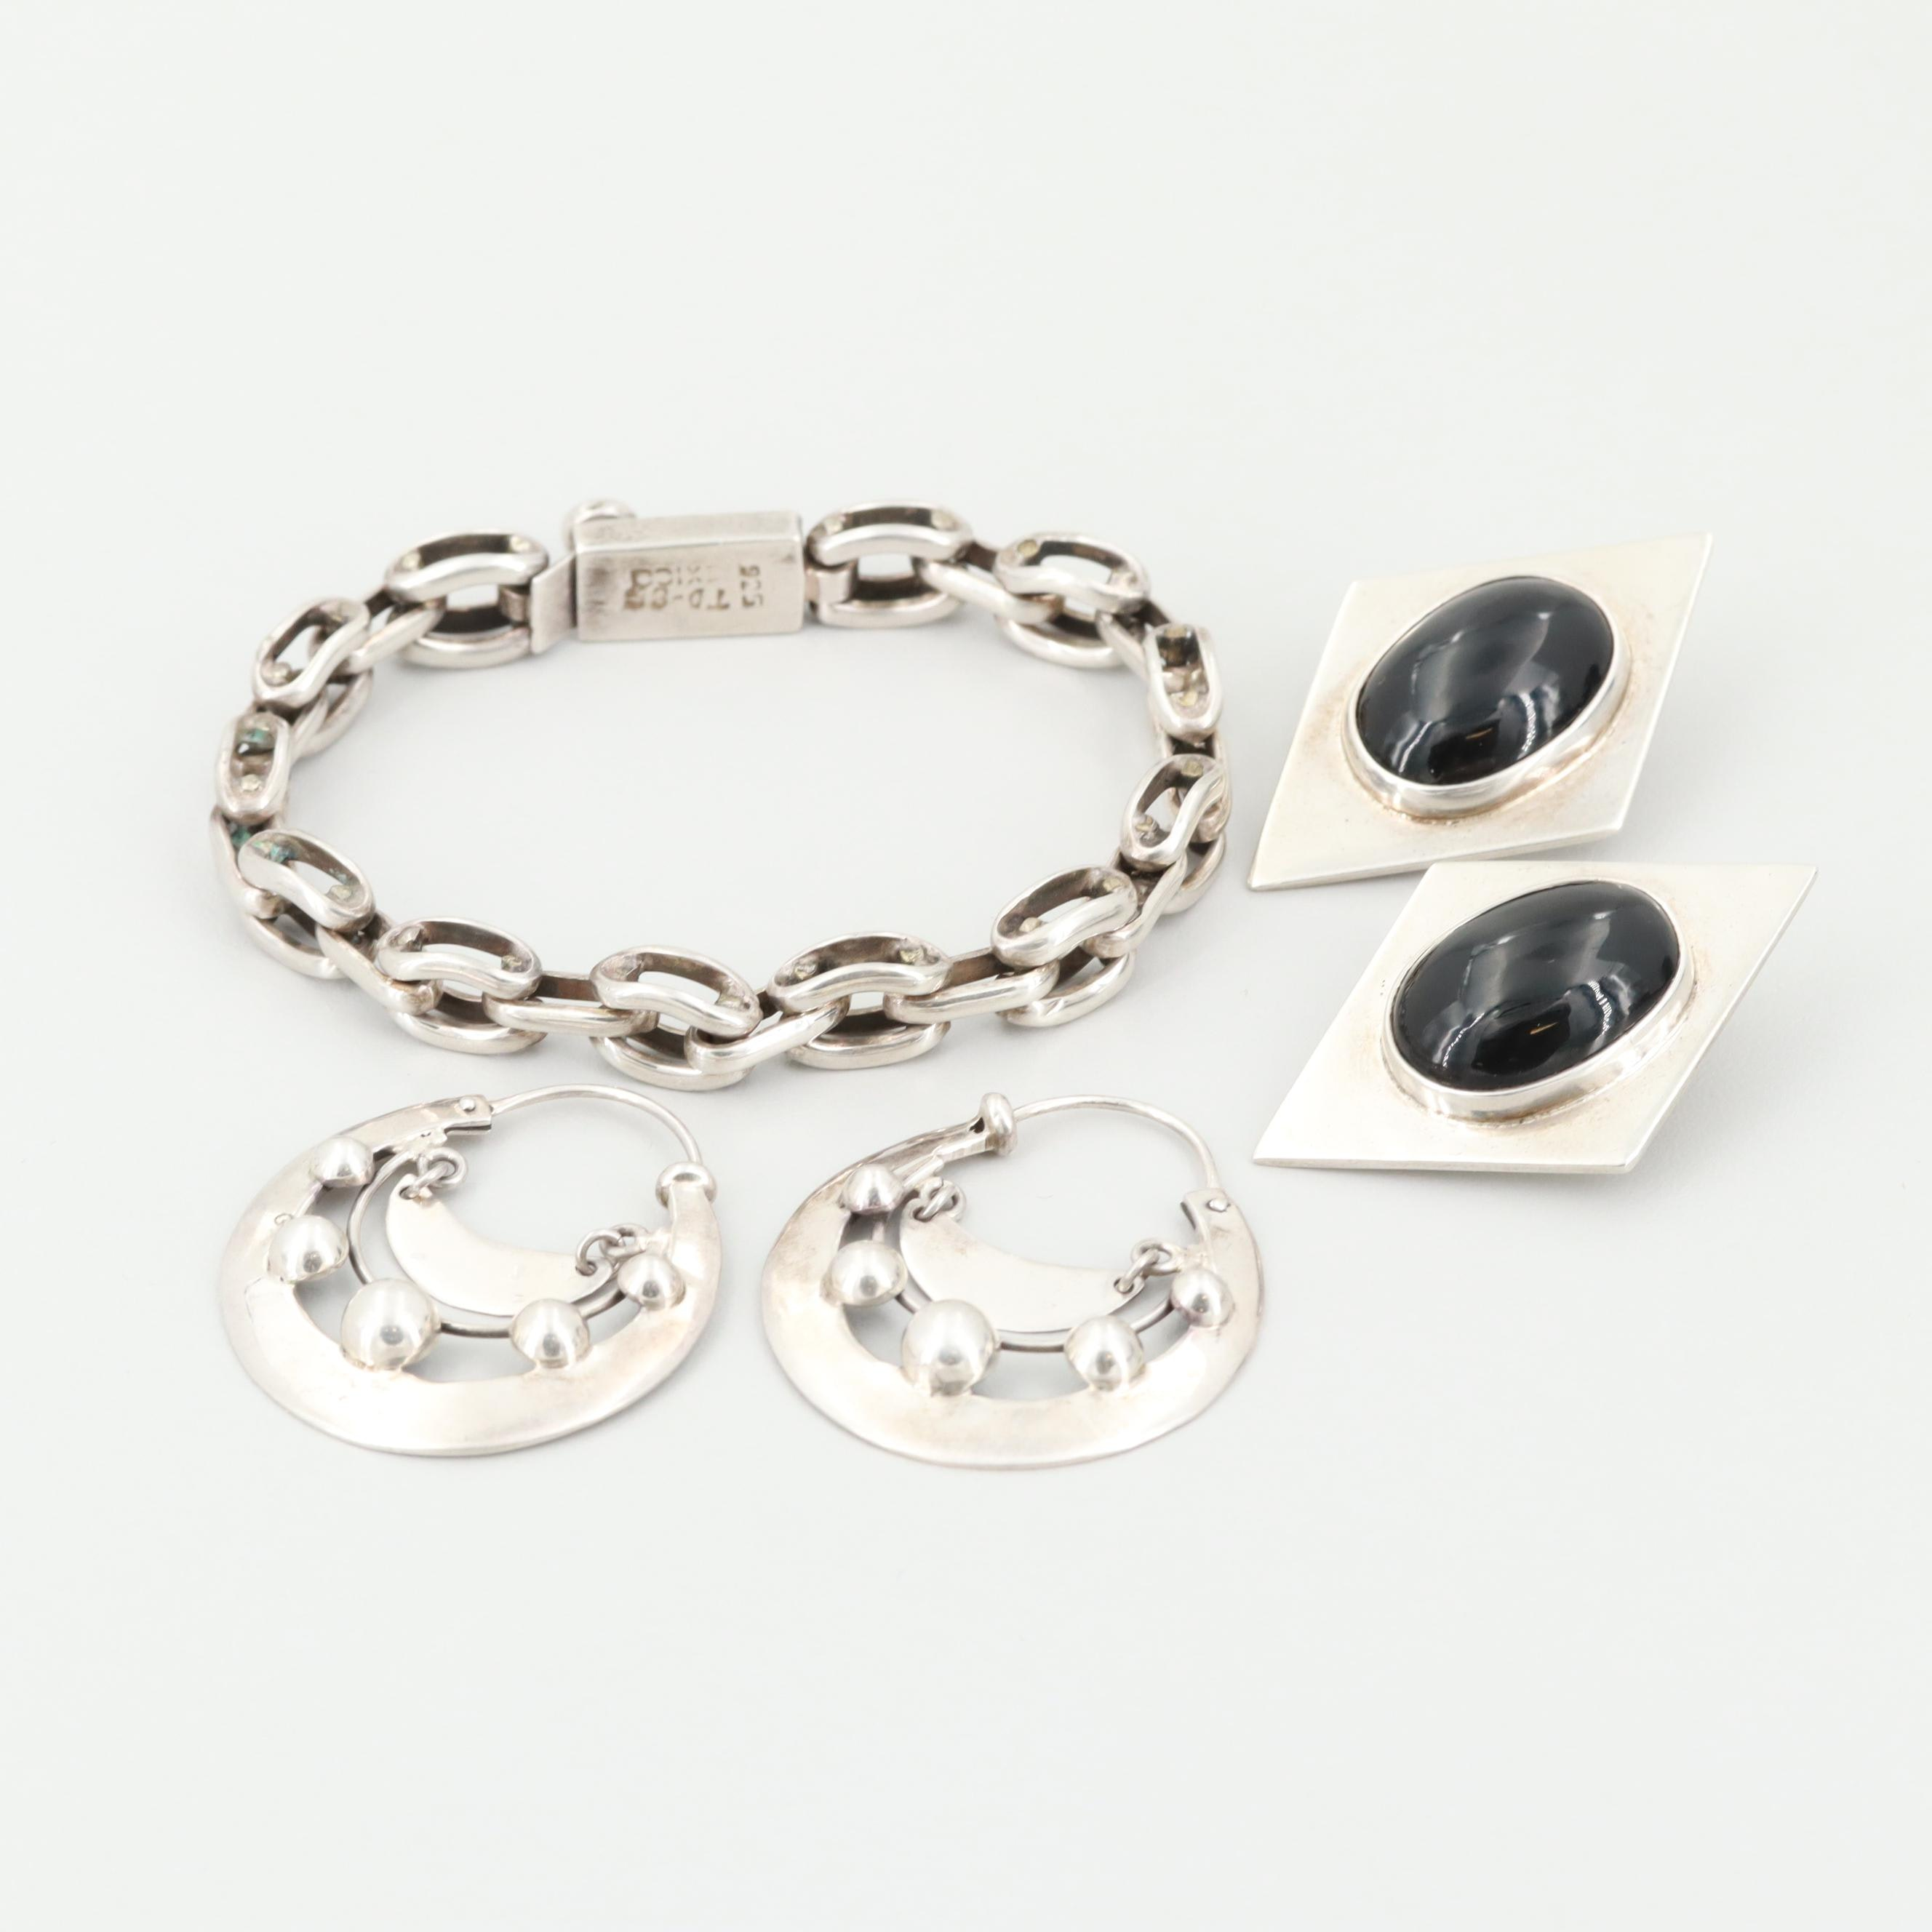 Sterling Silver Earrings and Bracelet Including Taxco and Onyx